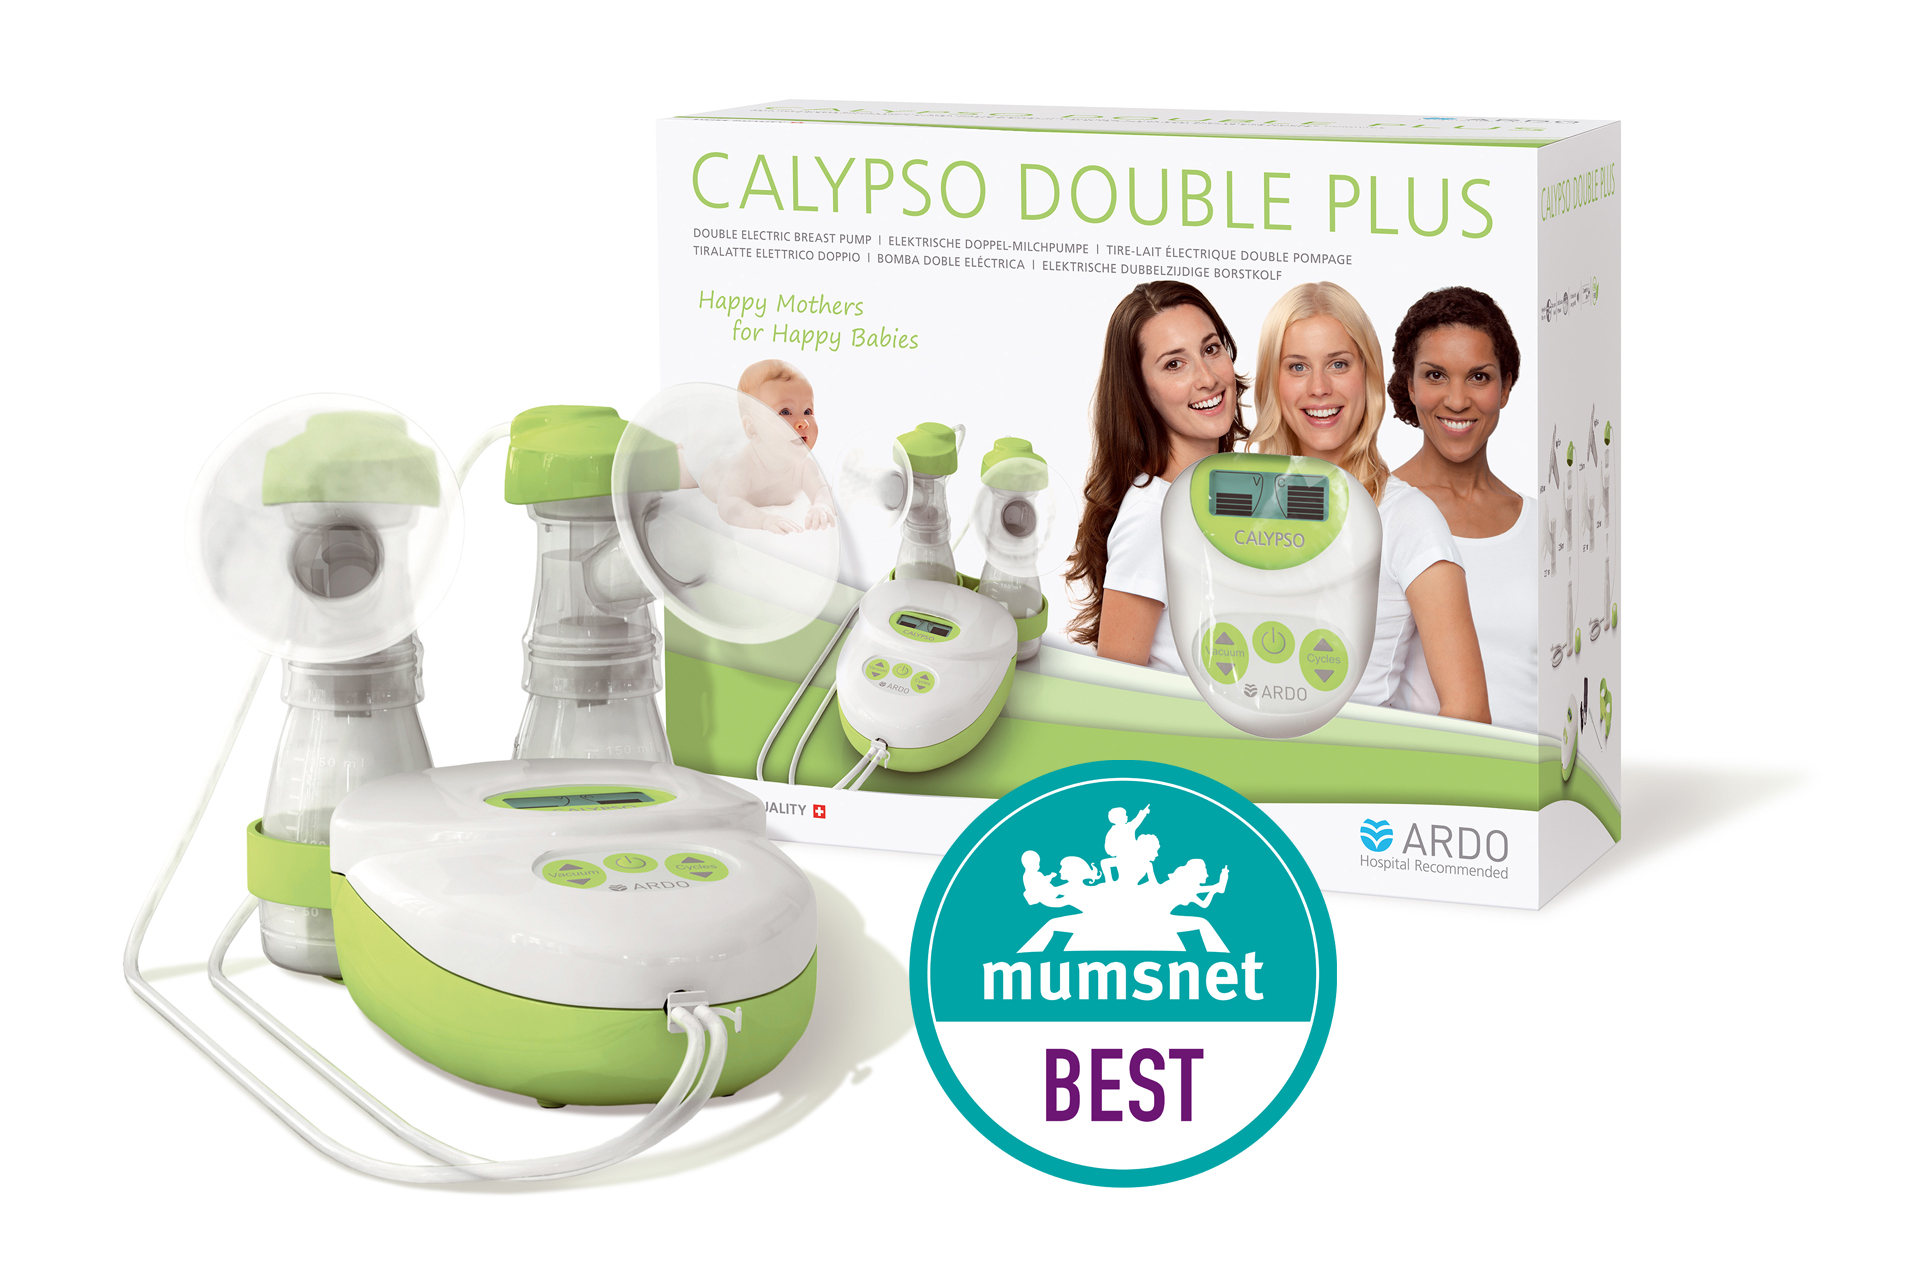 Ardo Breastpumps Mumsnet Best Breast Pump 2018 Winners